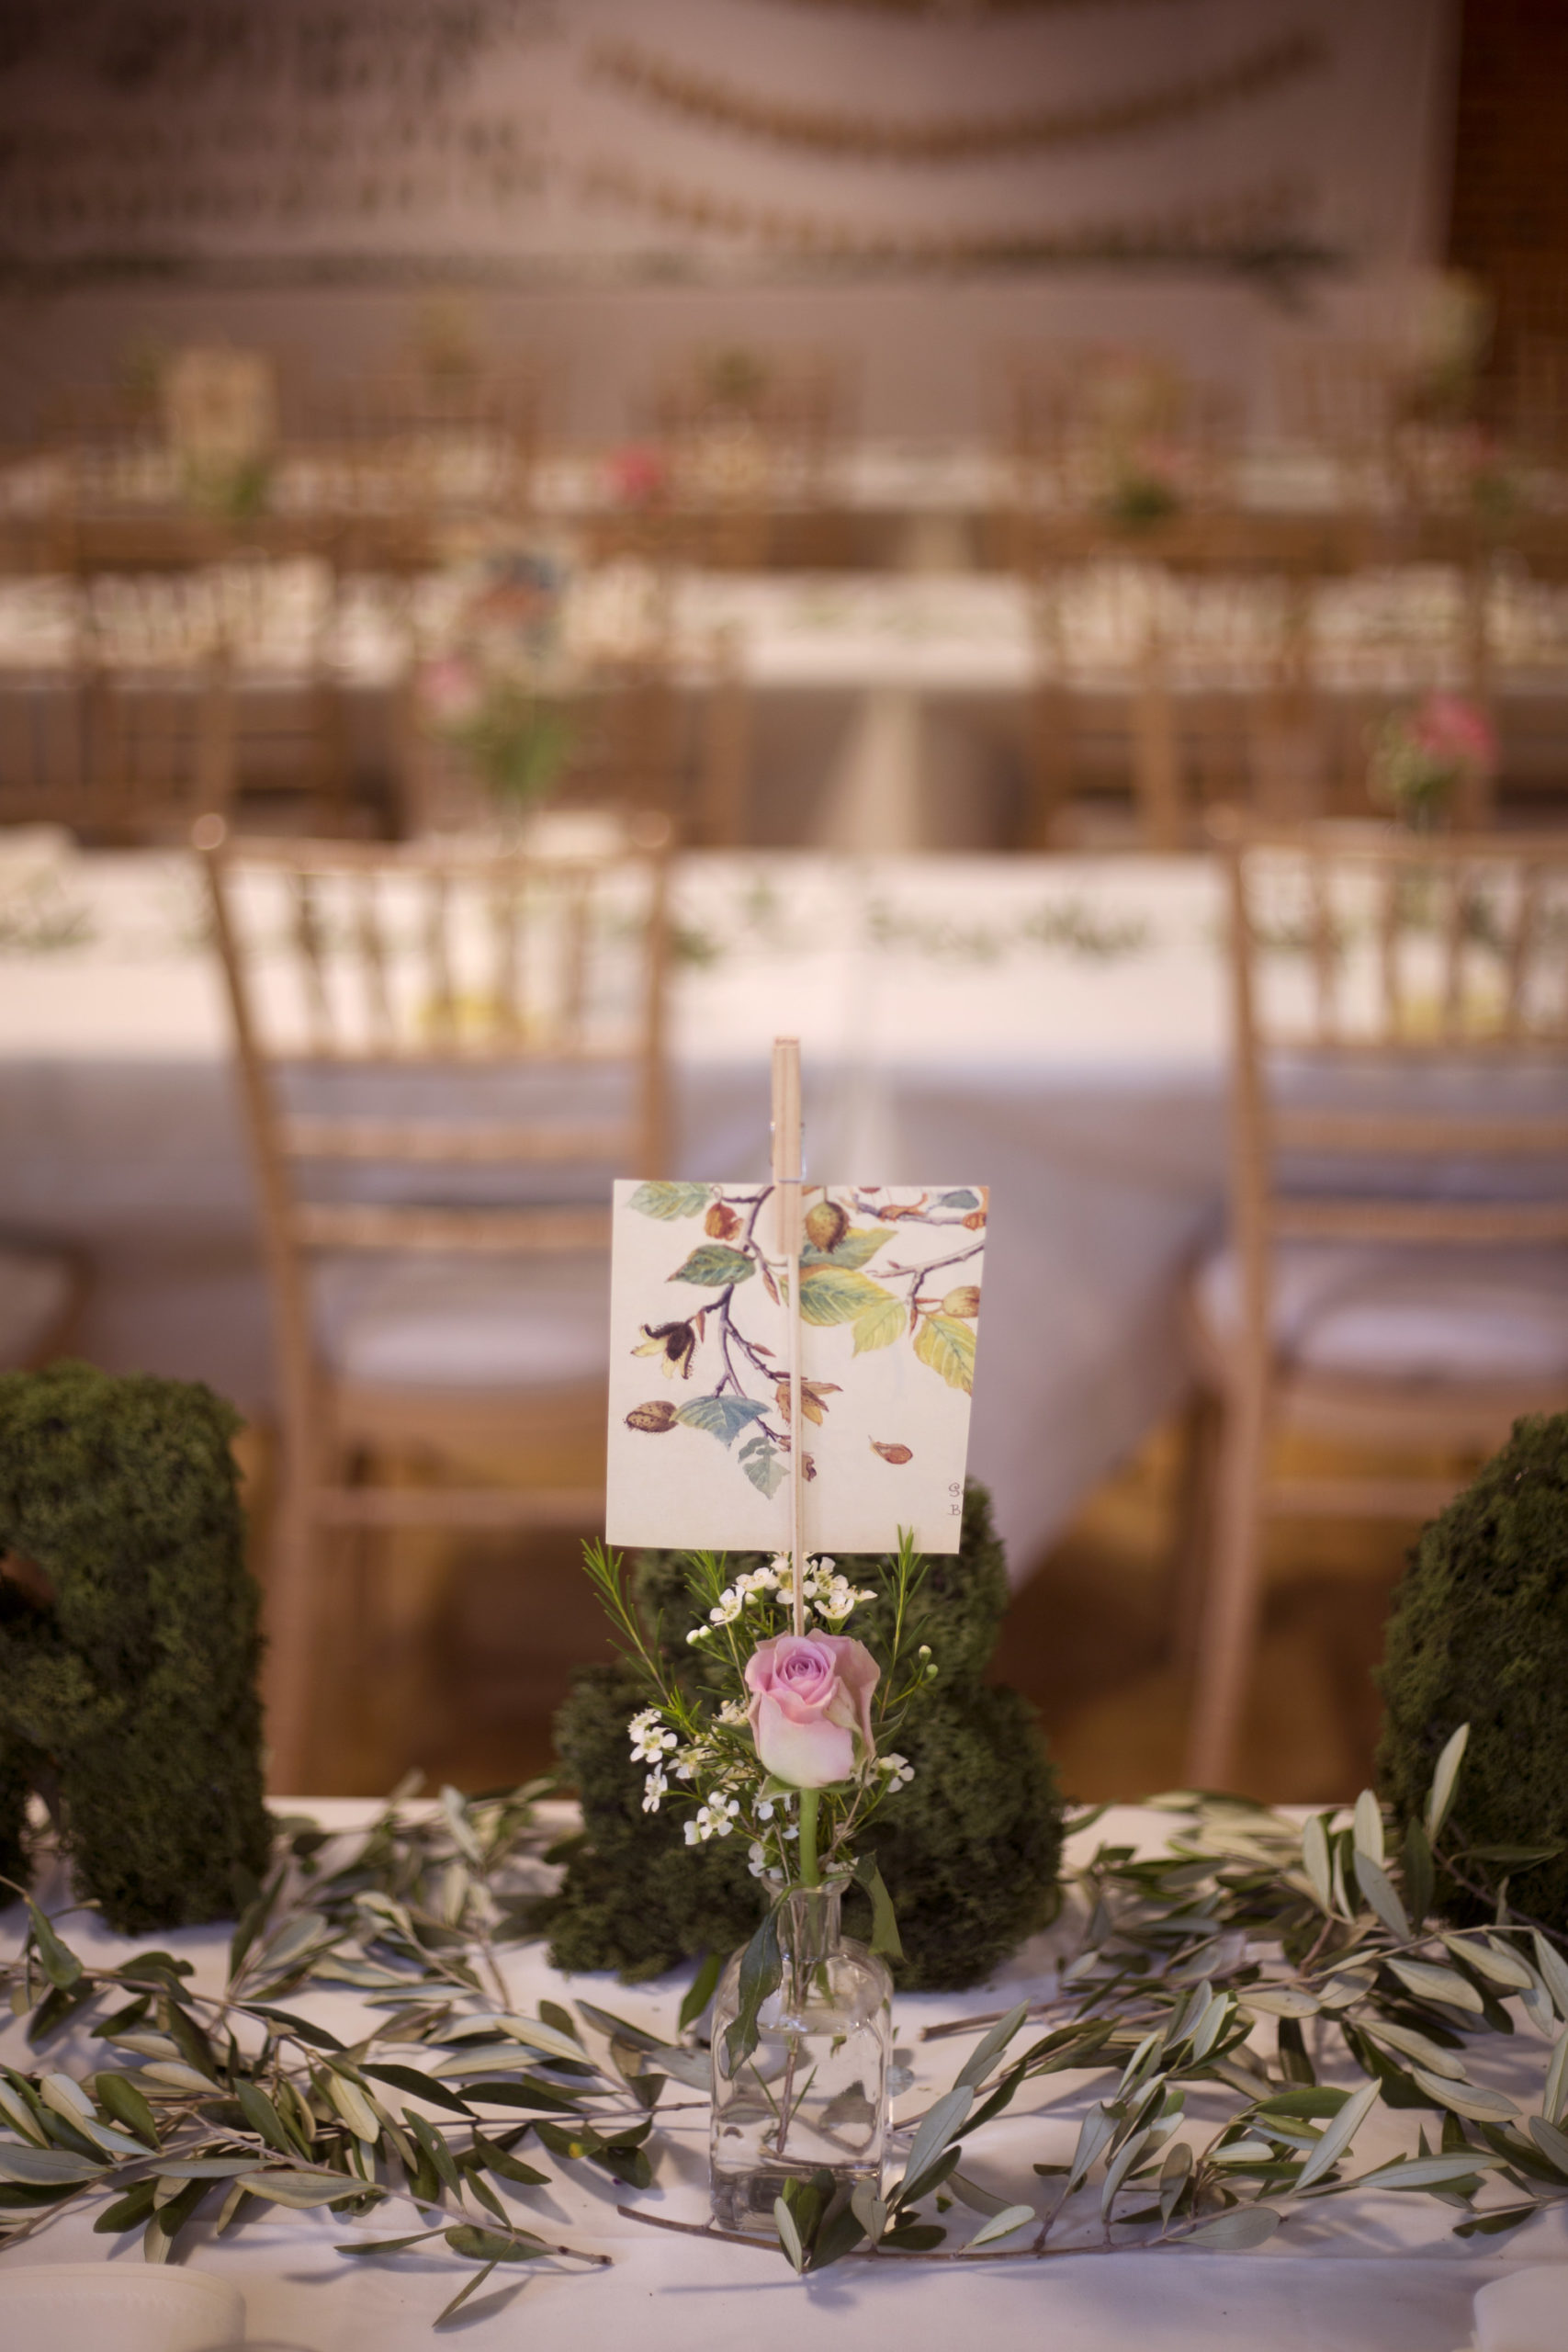 Pink rose and handmade place names on wedding table settings outdoor woodland wedding photographer